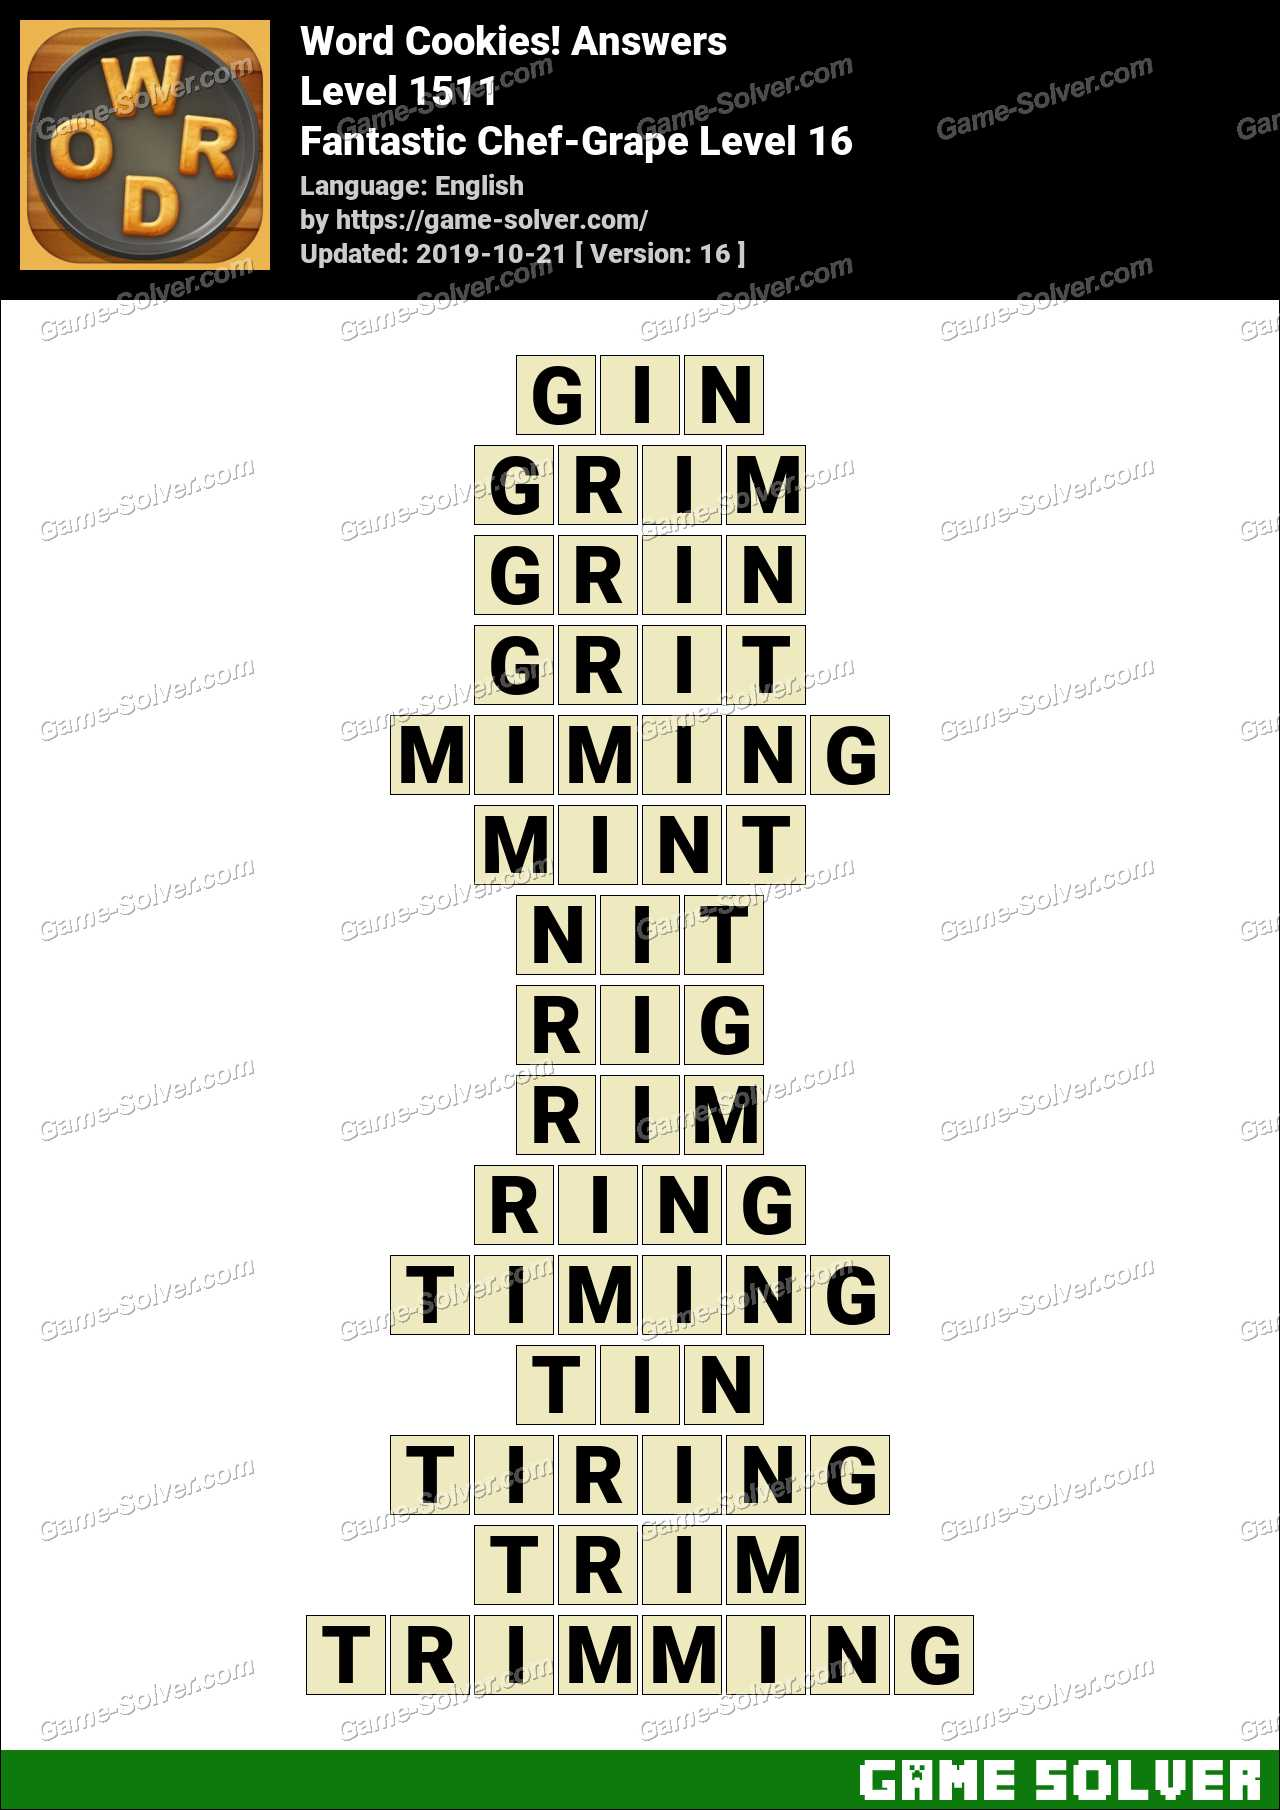 Word Cookies Fantastic Chef-Grape Level 16 Answers